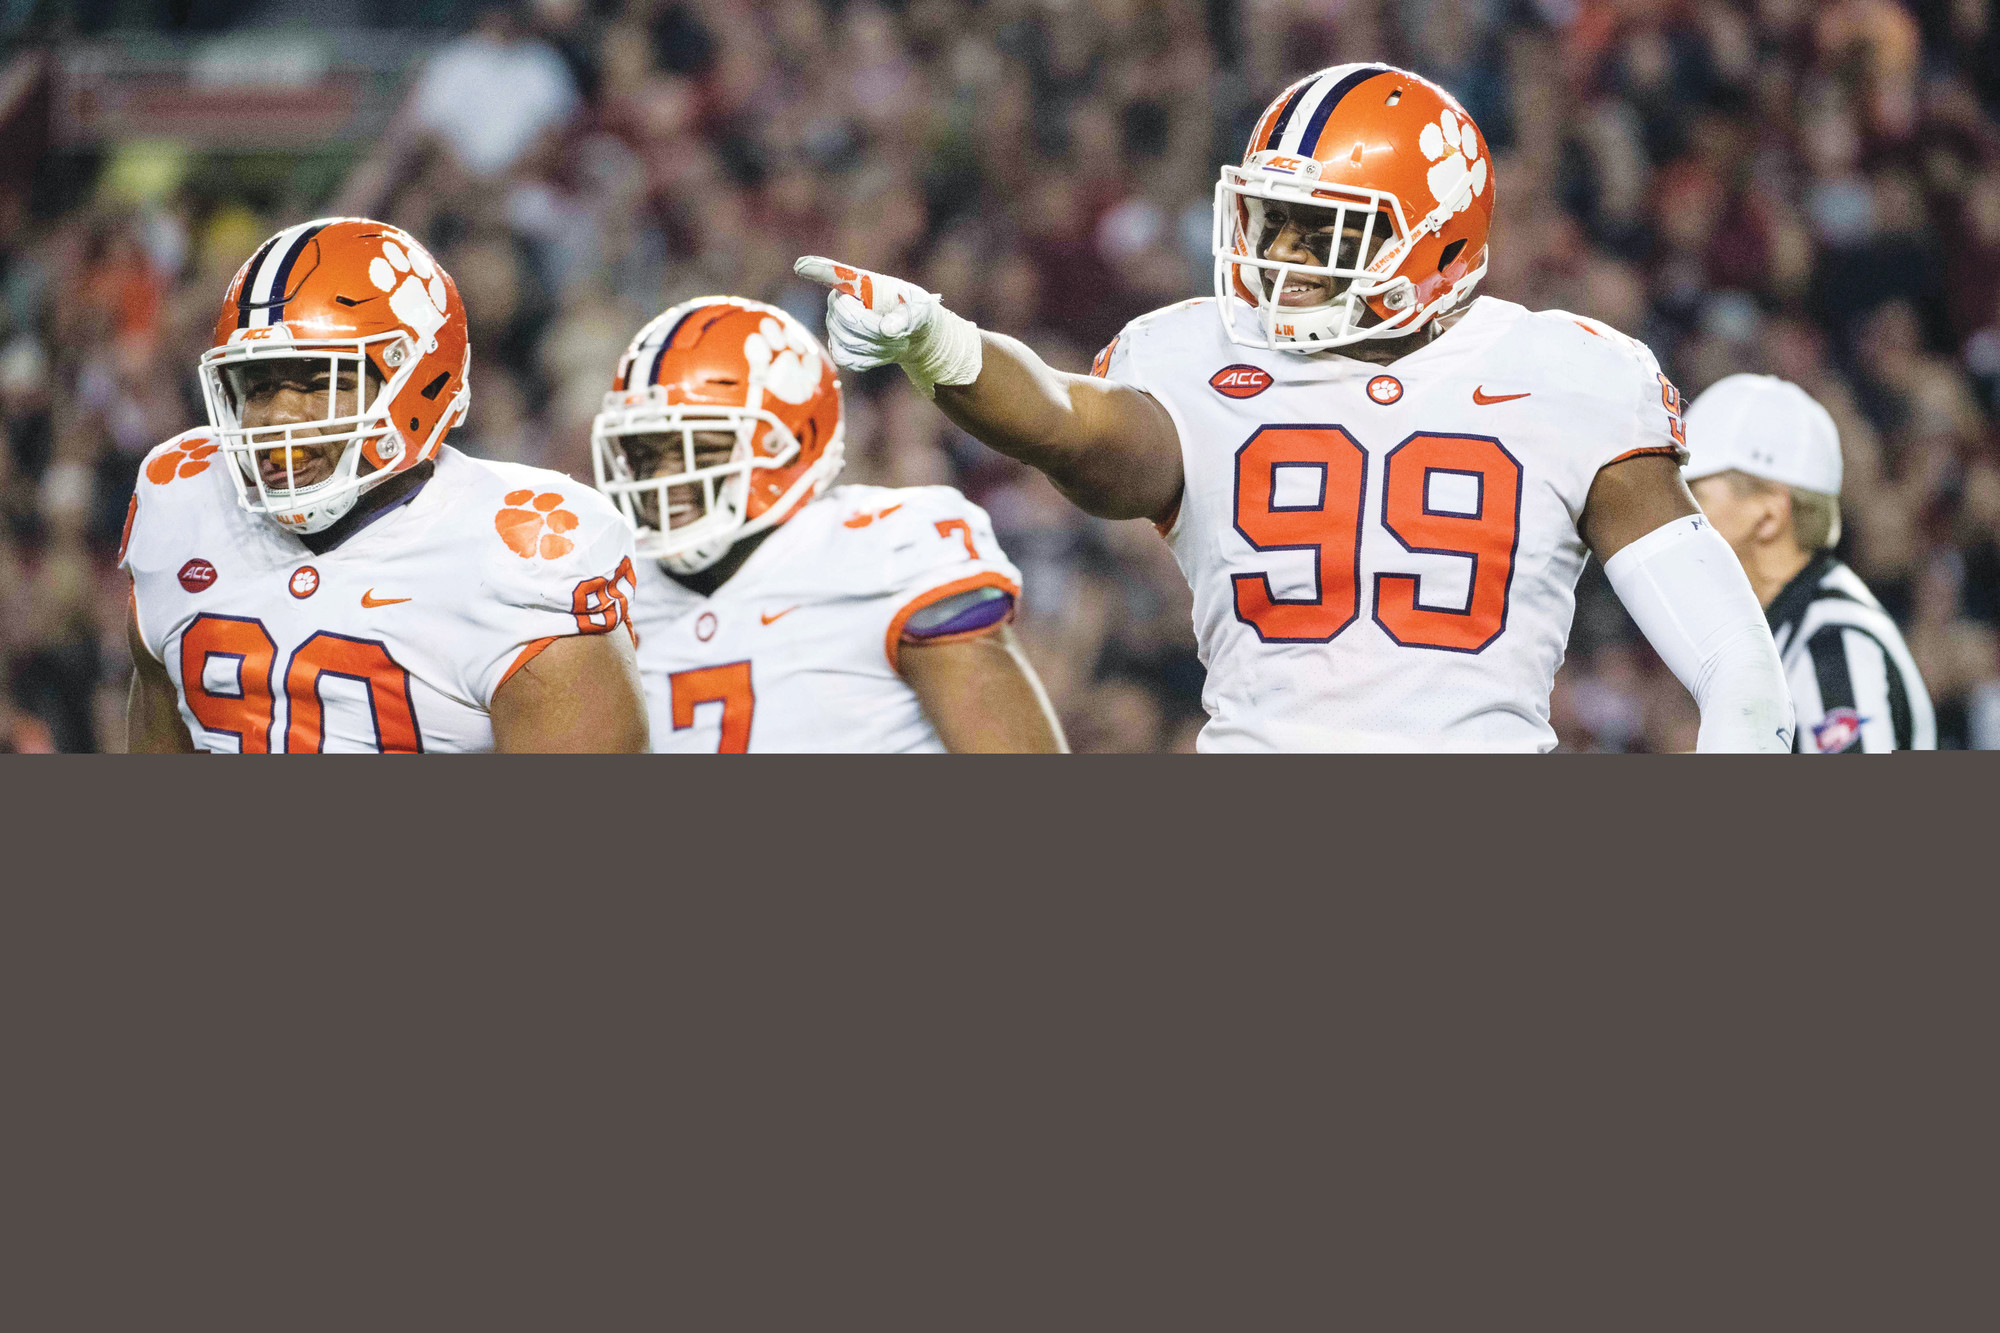 AP FILE PHOTO  Clemson's Clelin Ferrell (99), Dexter Lawrence (90), Austin Bryant (7) and Clelin Ferrell (99) along with Christian Wilkins make up a tremendous defensive front for the Tigers. Clemson opens its season at home on Saturday against Furman.